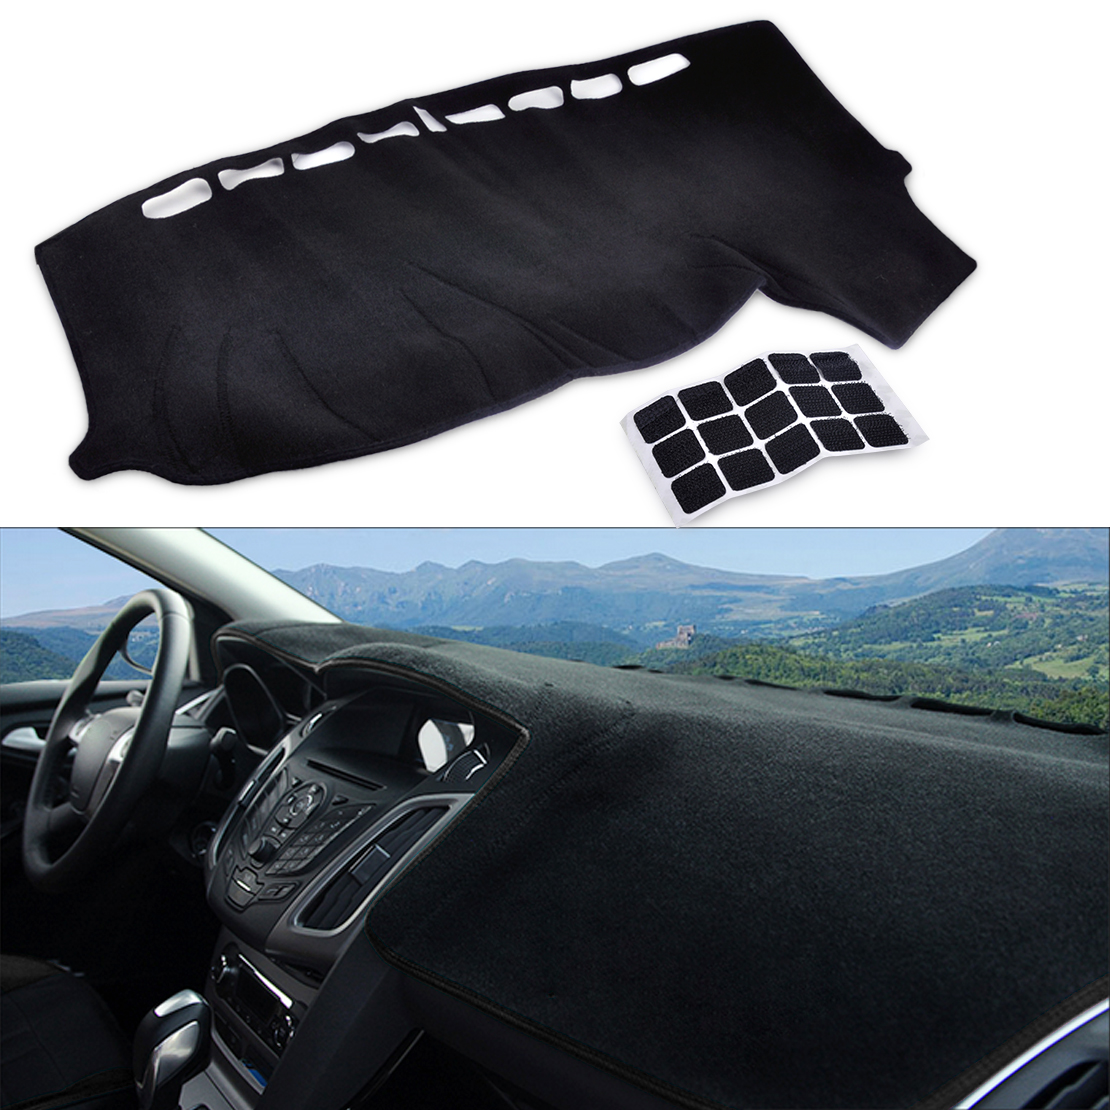 Dwcx lhd auto inner dashboard carpet dash cover pad dashmat mat sun shade protector for ford